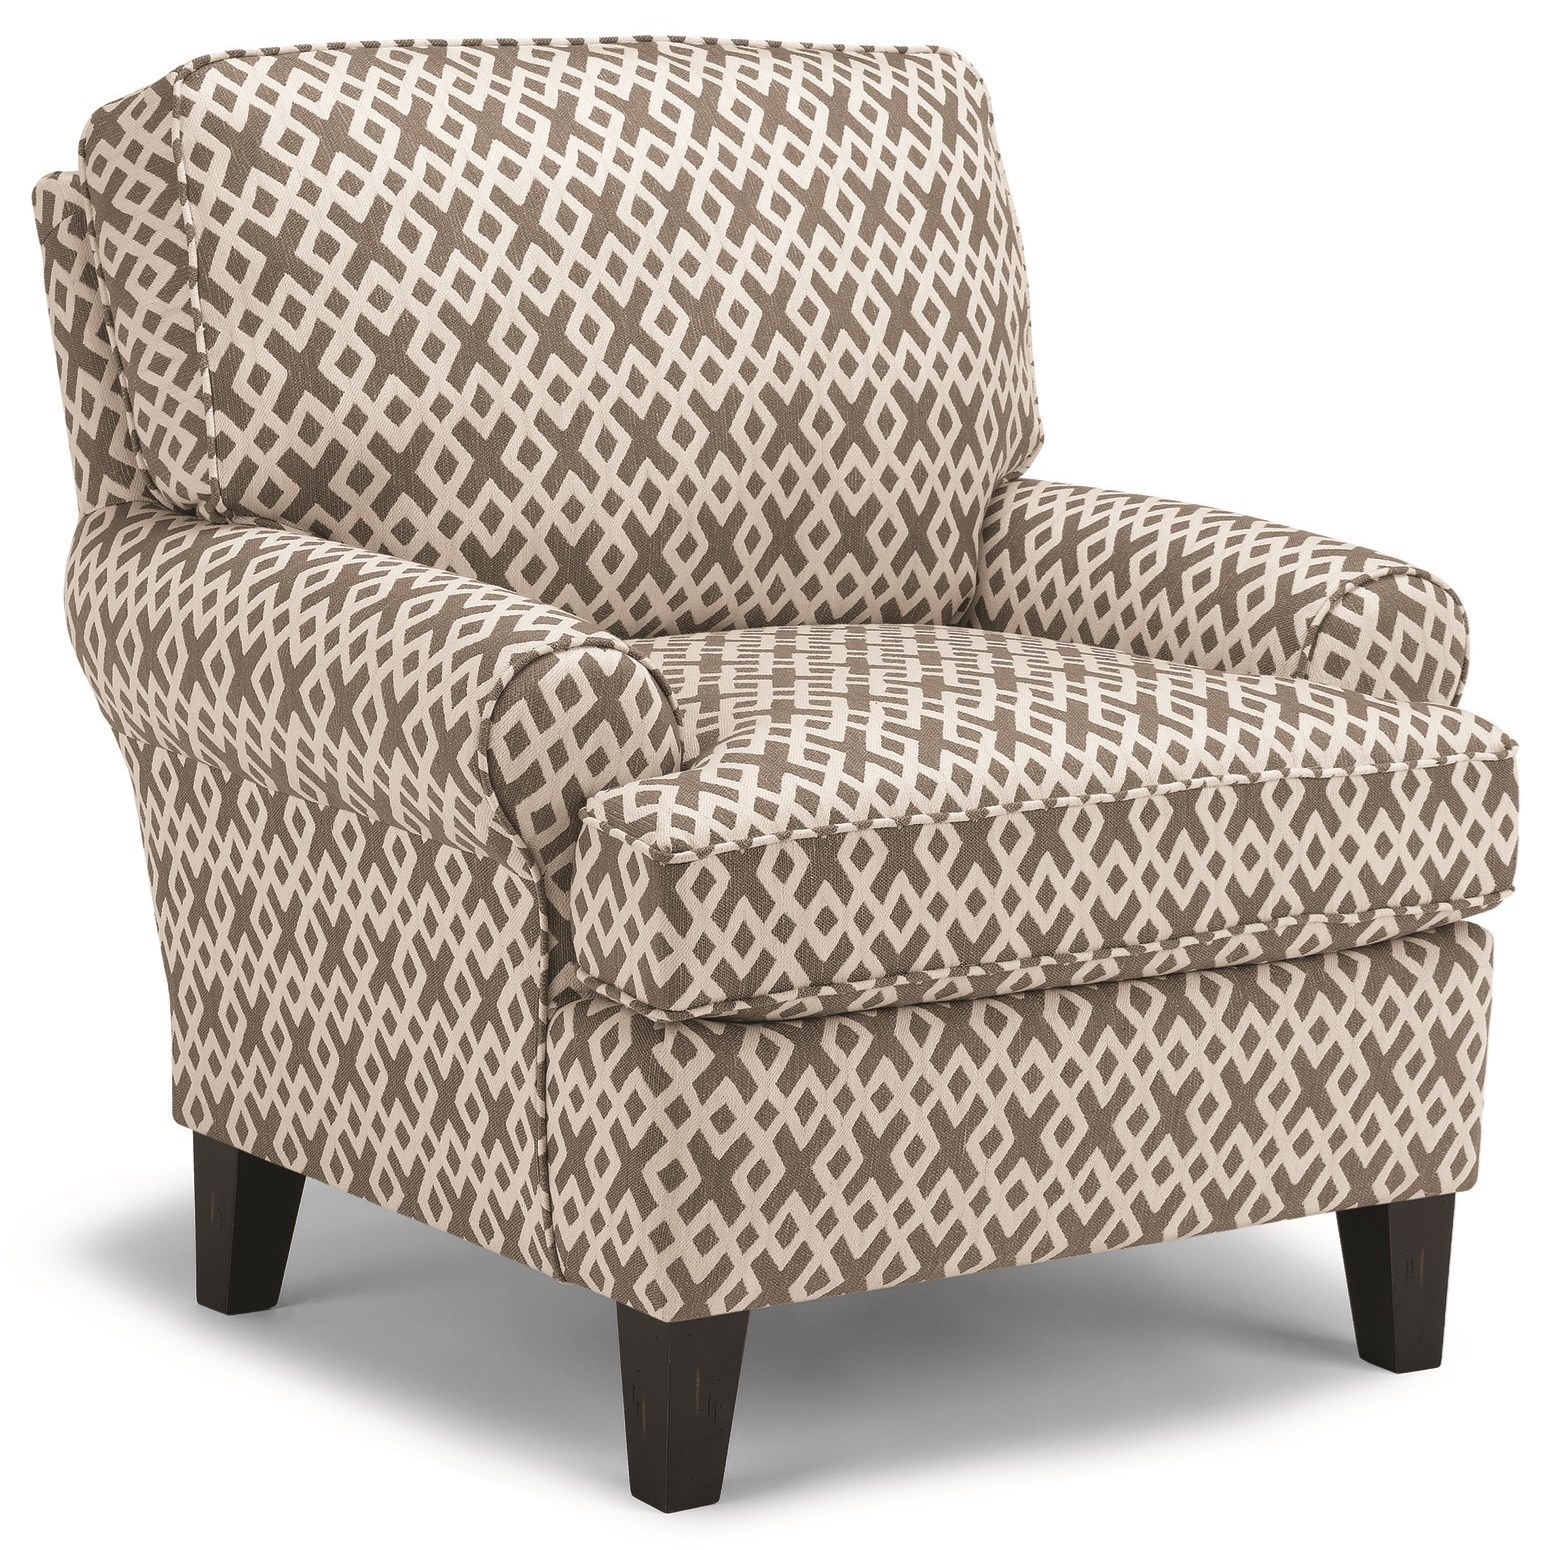 Club Chairs Mayci Chair by Best Home Furnishings at Lapeer Furniture & Mattress Center